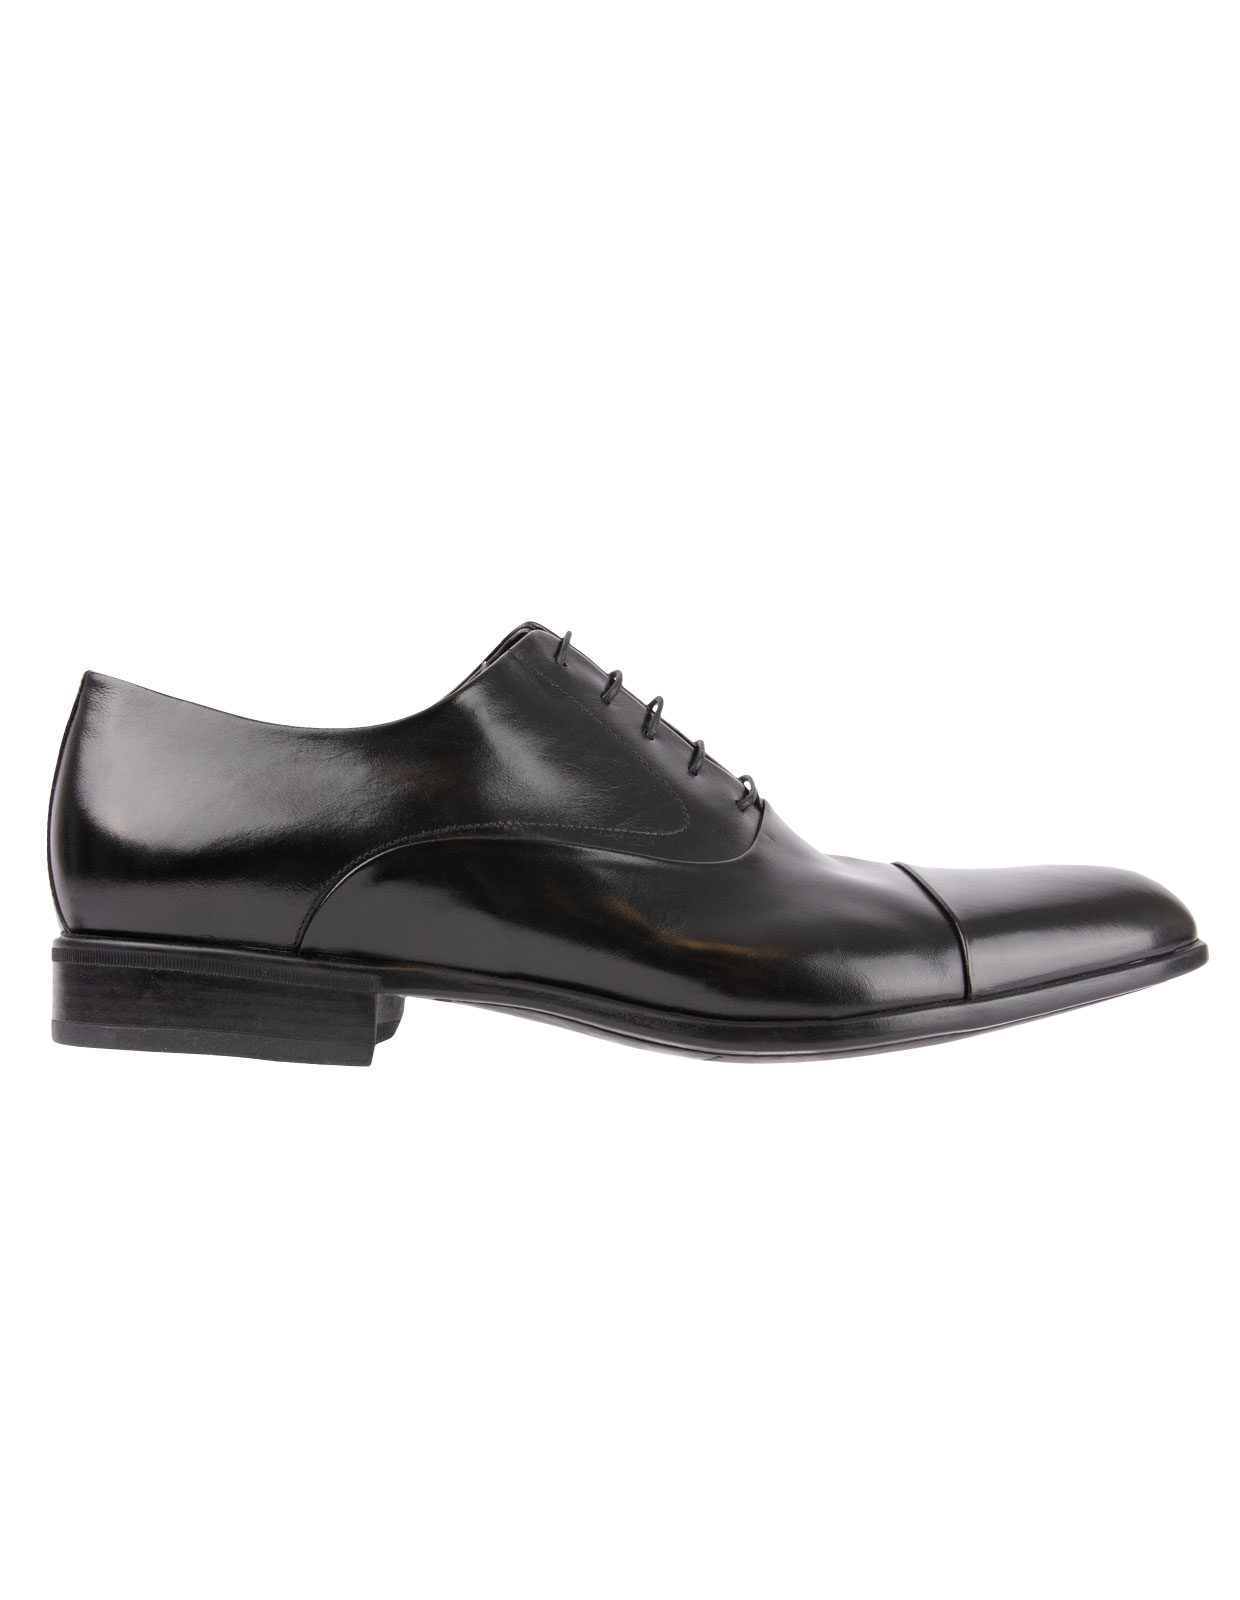 Dublin Oxford Shoes Calfskin Rubber Sole Black